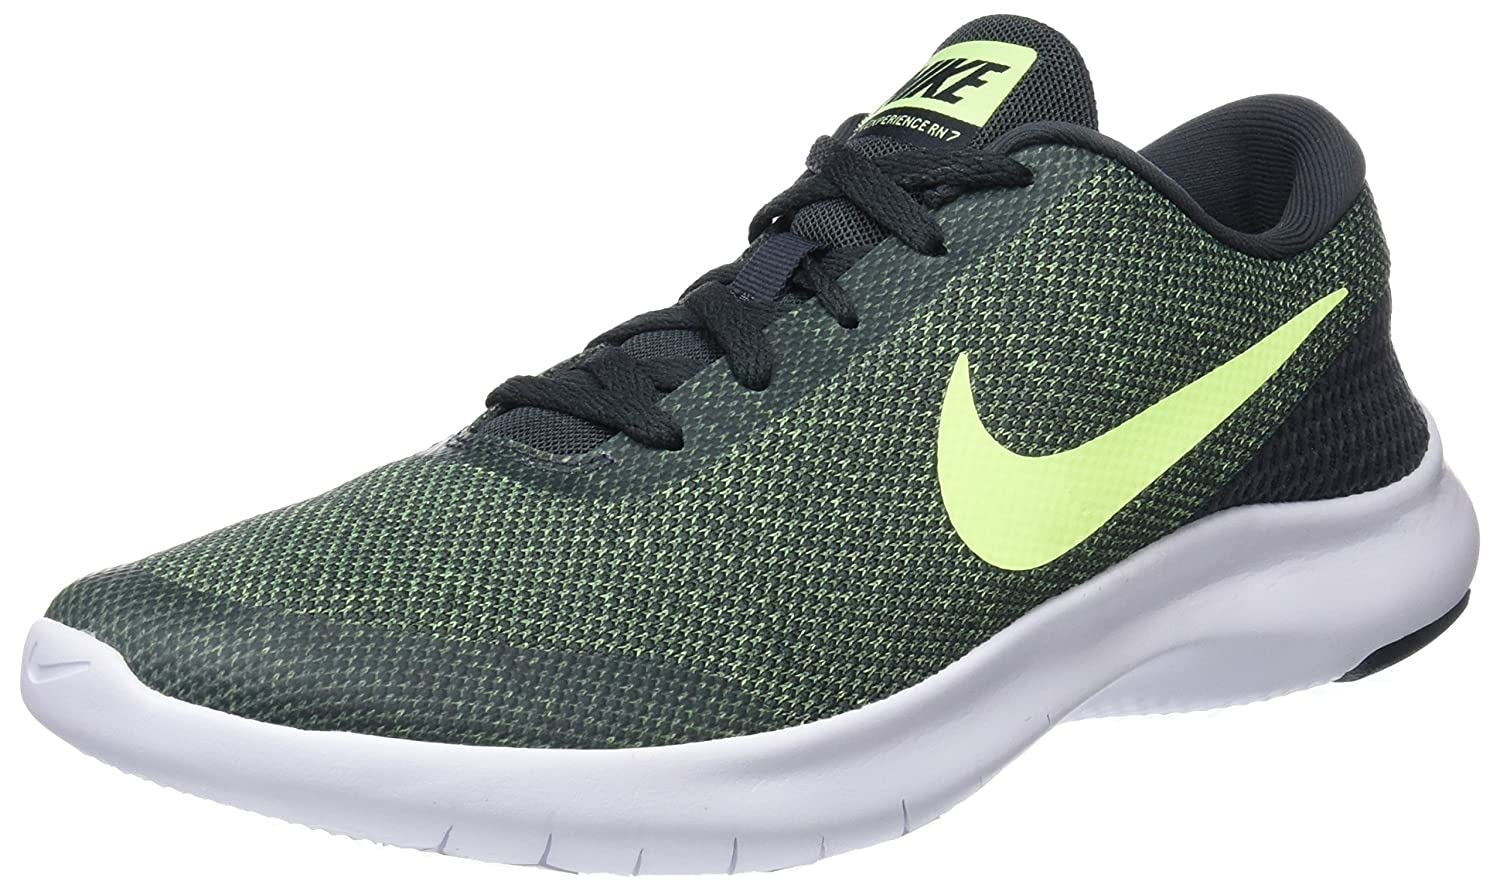 NIKE Men's Flex Experience 7 Running Shoe B0719CW5BJ 10 D(M) US|Anthracite/Volt Glow-white